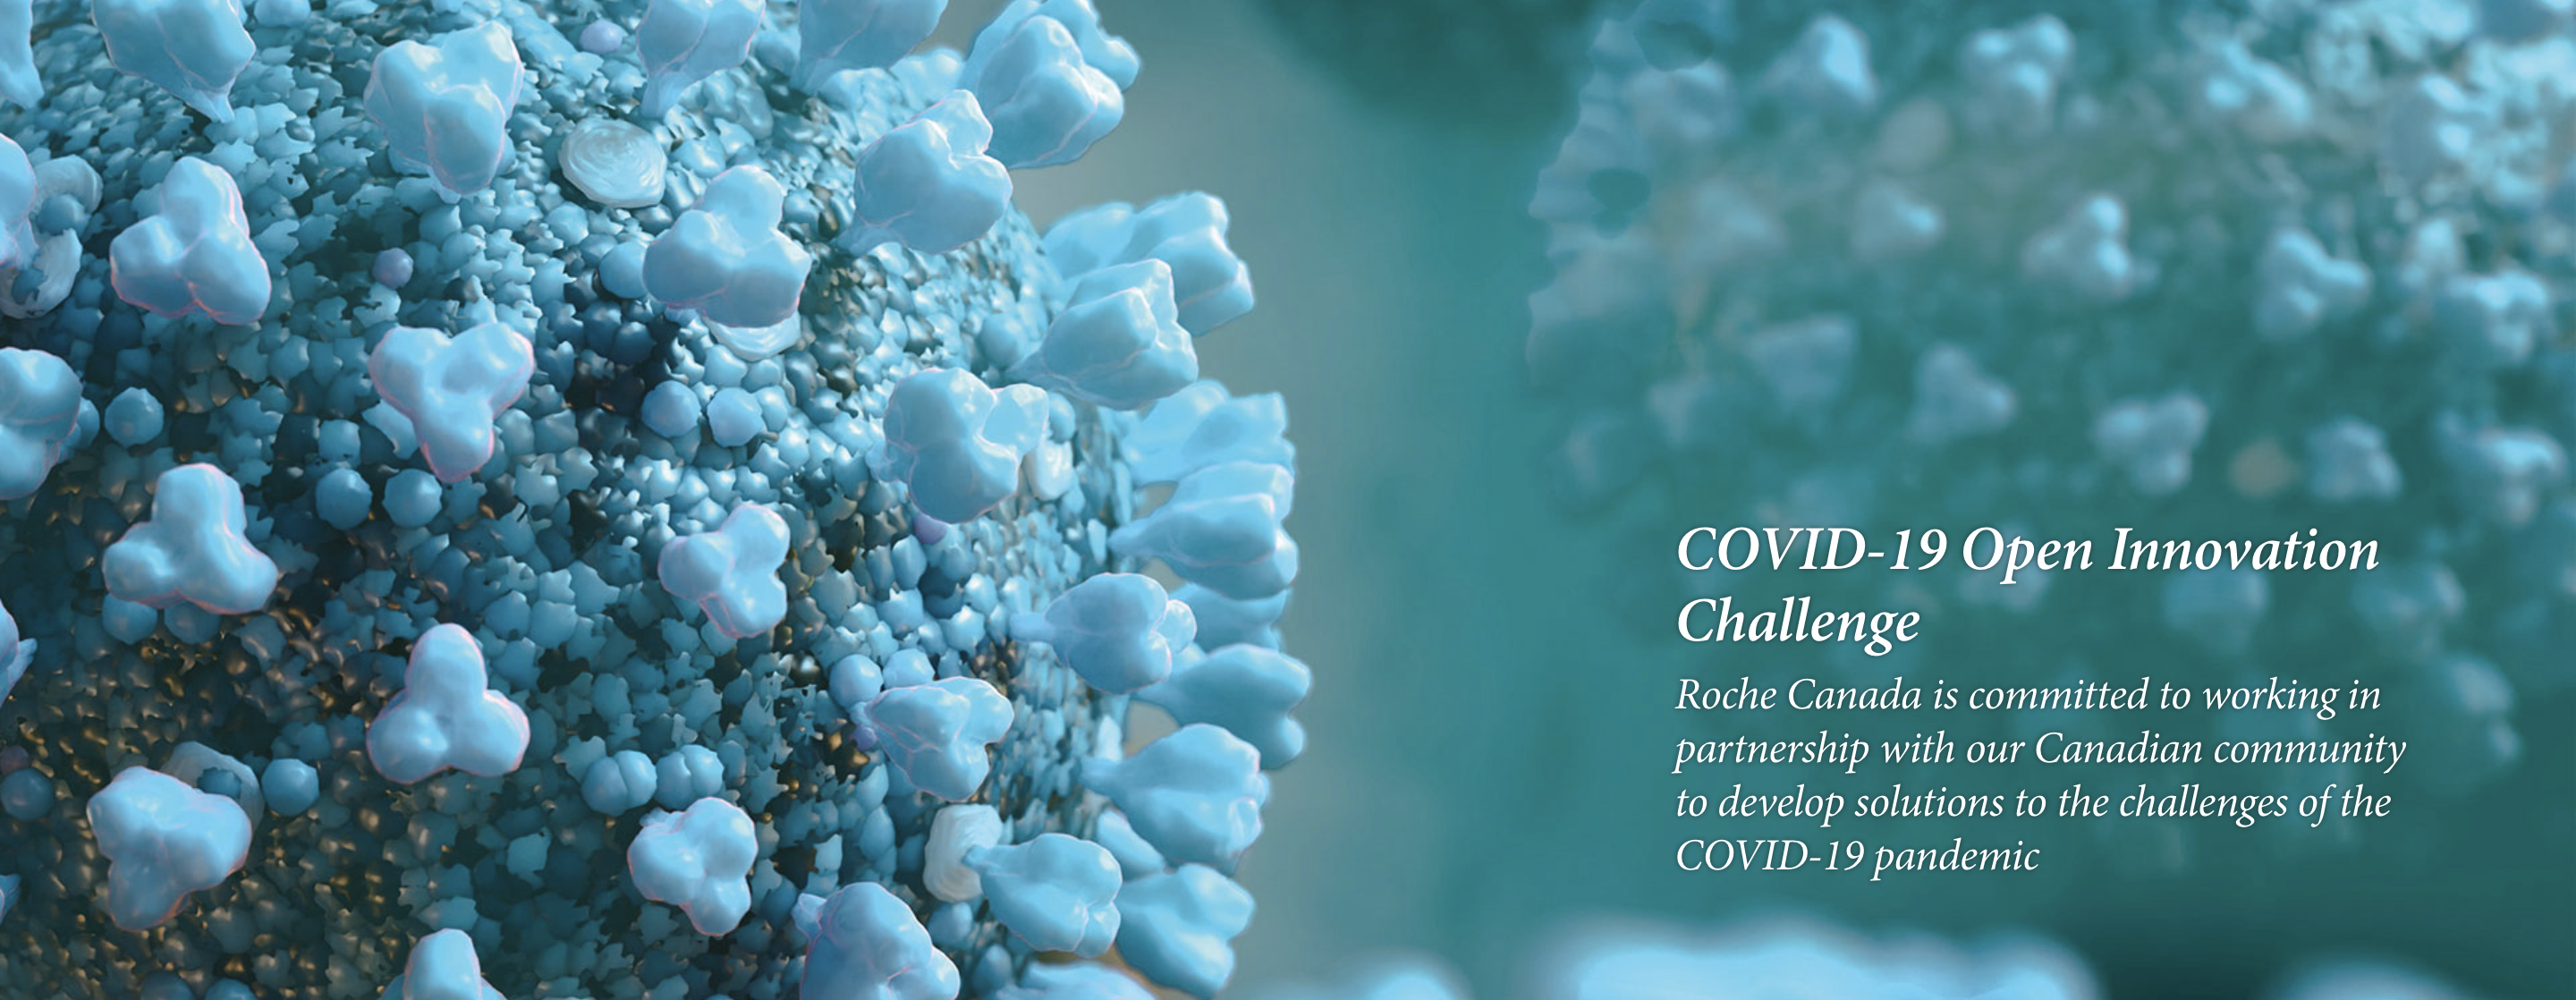 Seeking biologists, data scientists, students or experts with innovations to address issues of the COVID-19 pandemic